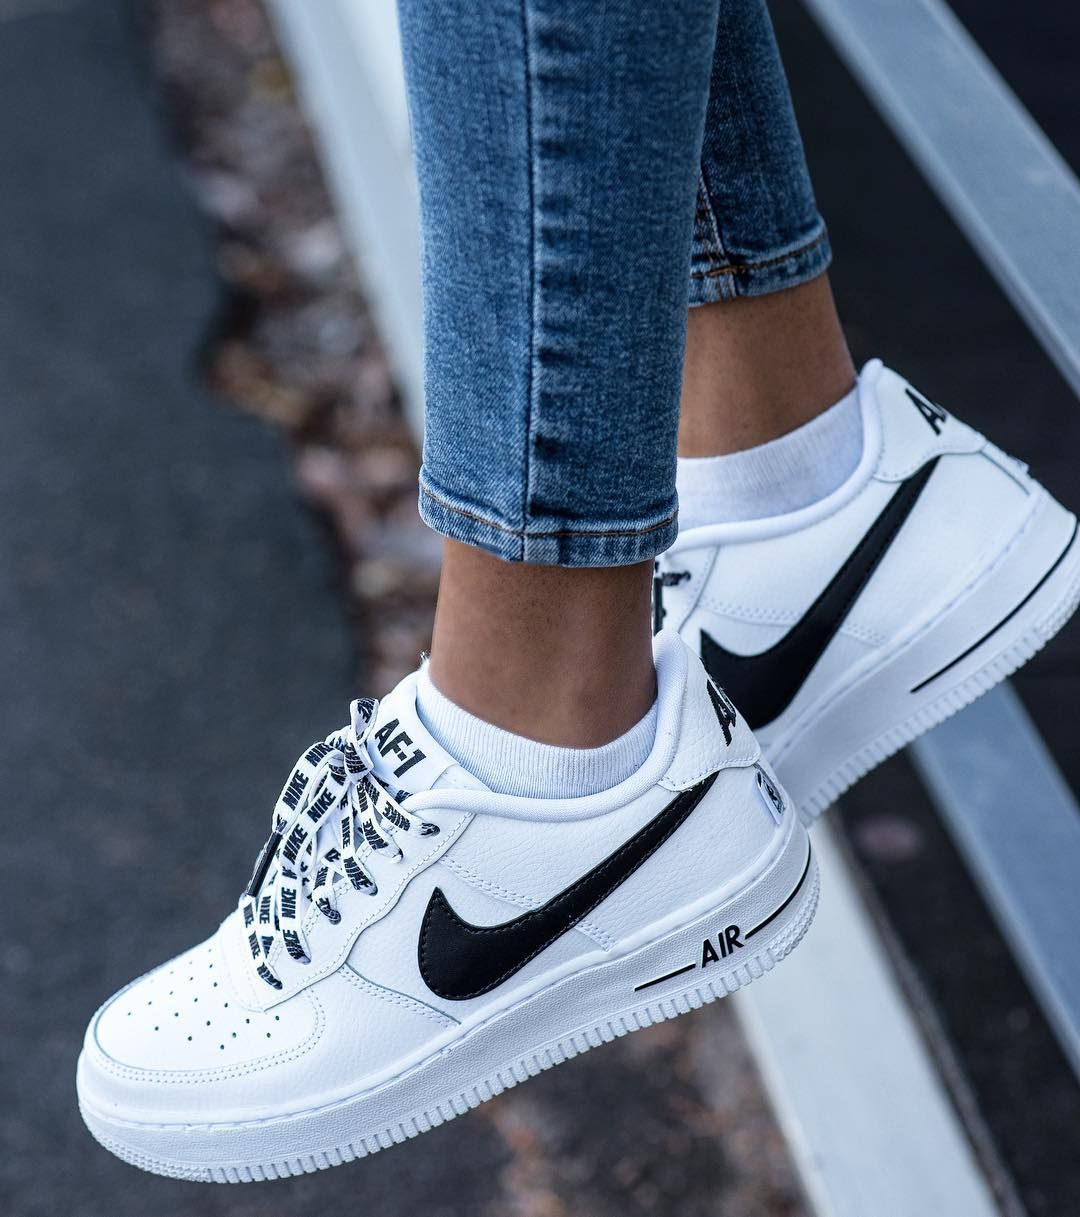 Burnell Cook on | Black nike shoes, Sneakers, Cute shoes